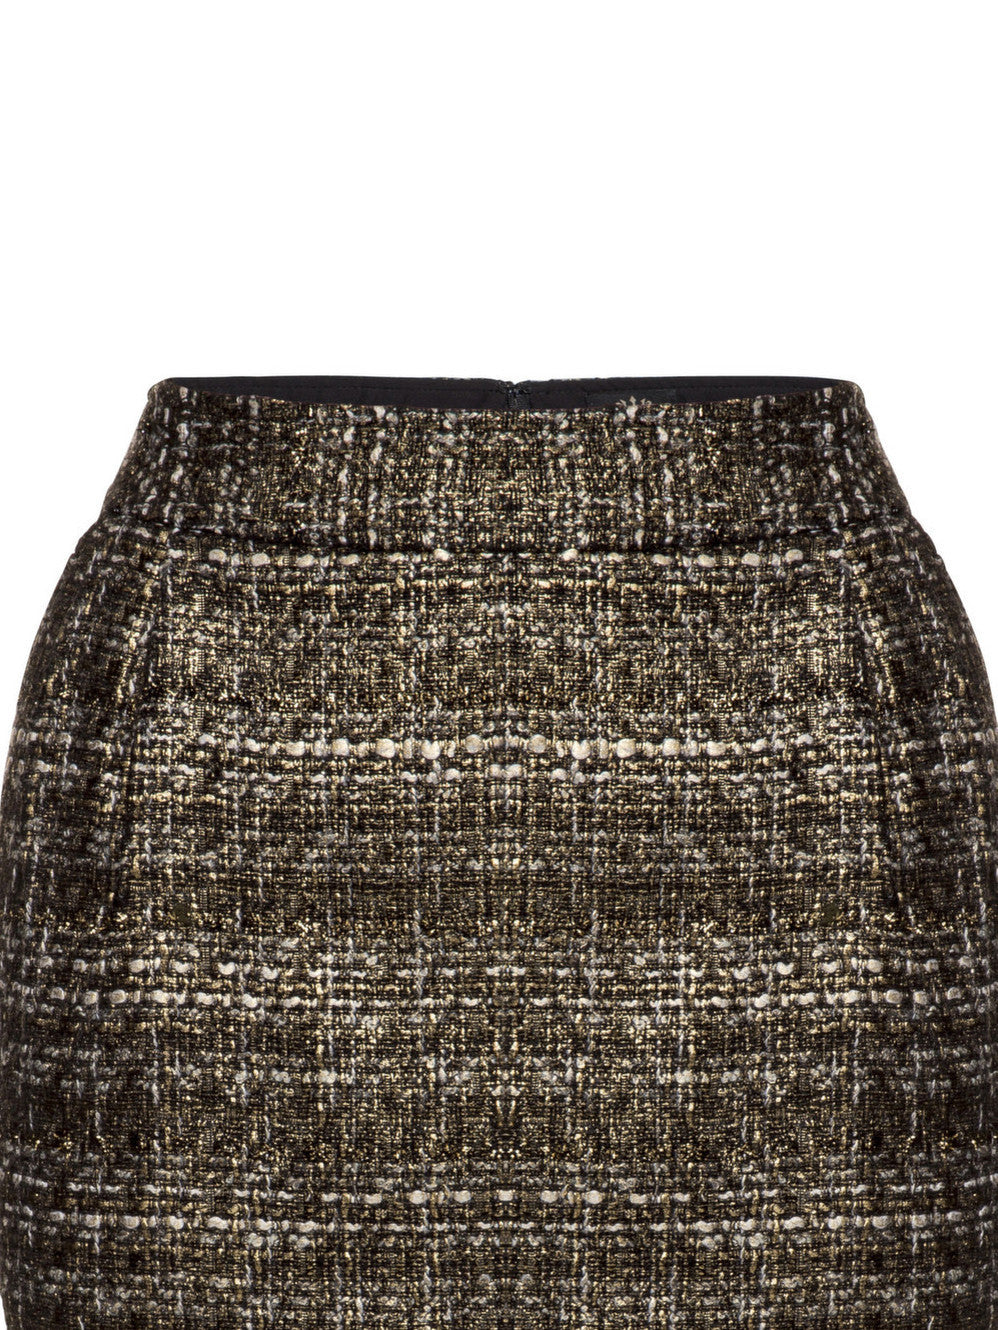 We Have Lingered Boucle Skirt - Little Joe Woman by Gail Elliott E-Boutique  - 3